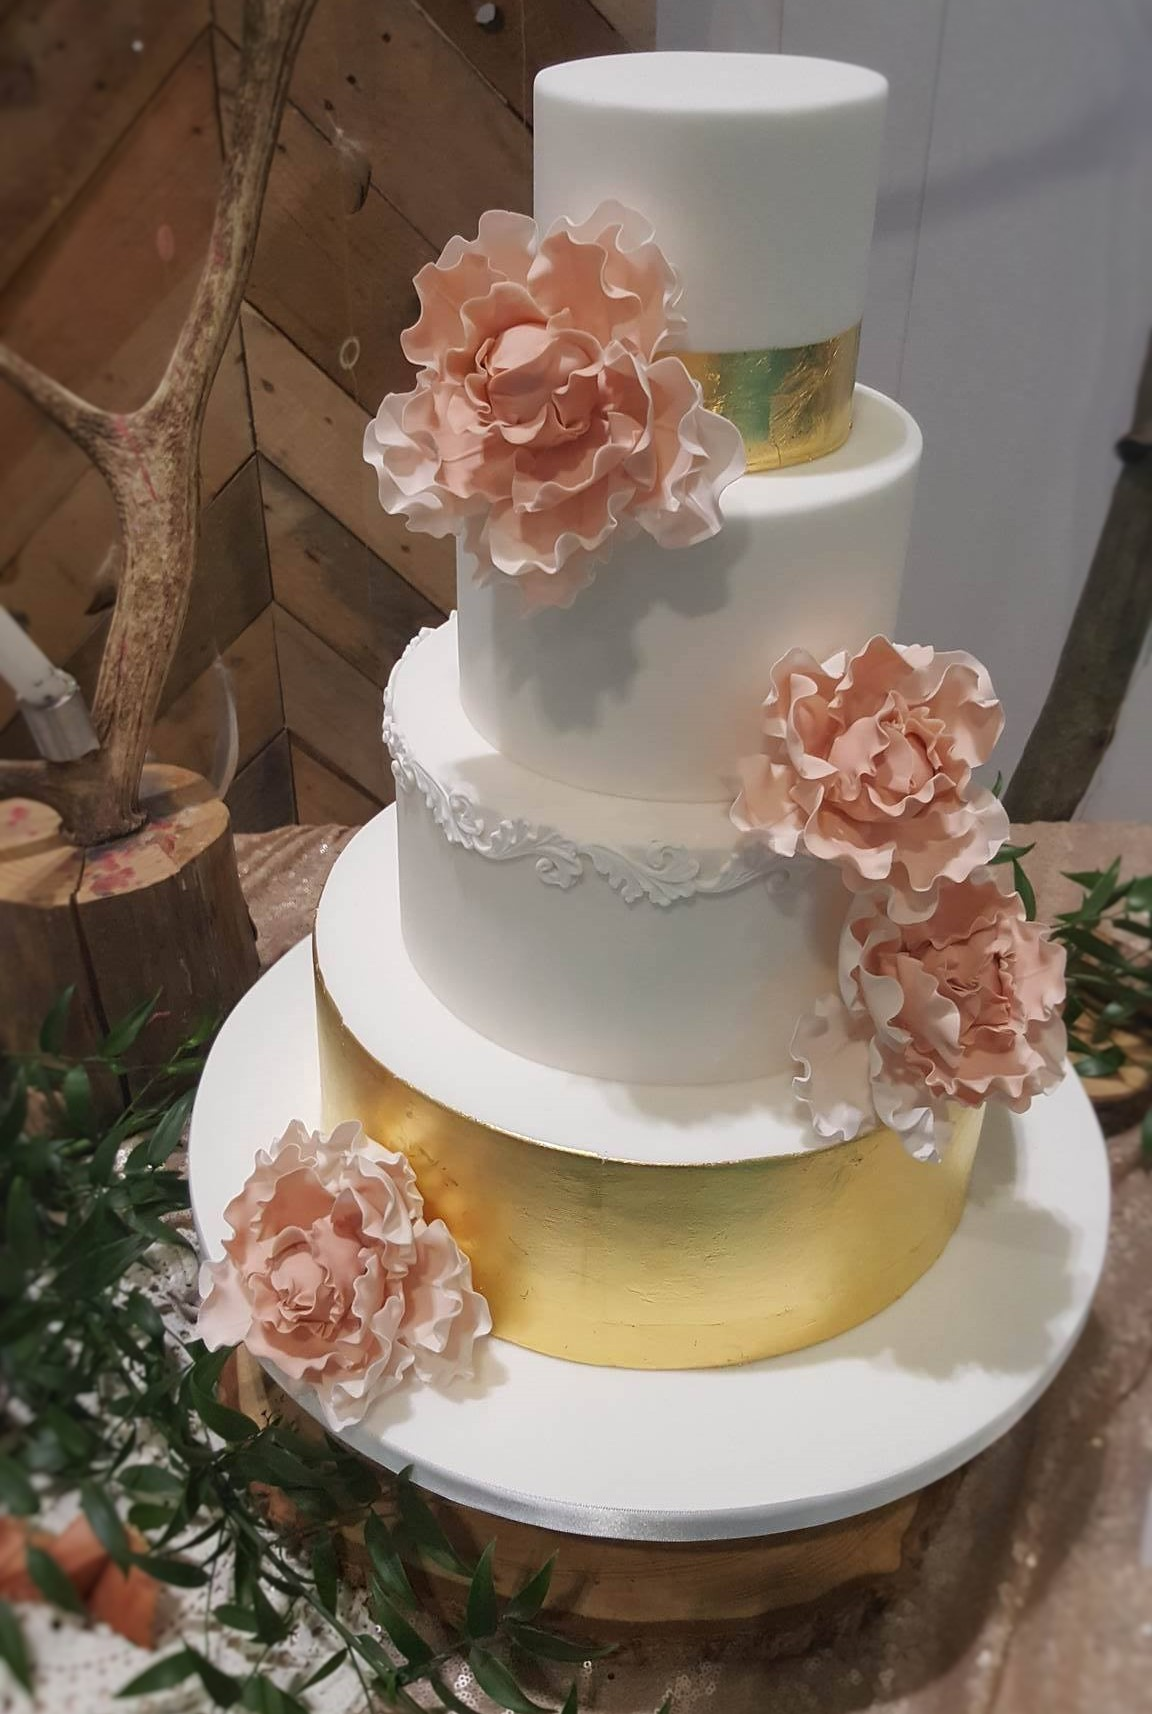 Wedding Cake Inspiration - Pink and Gold